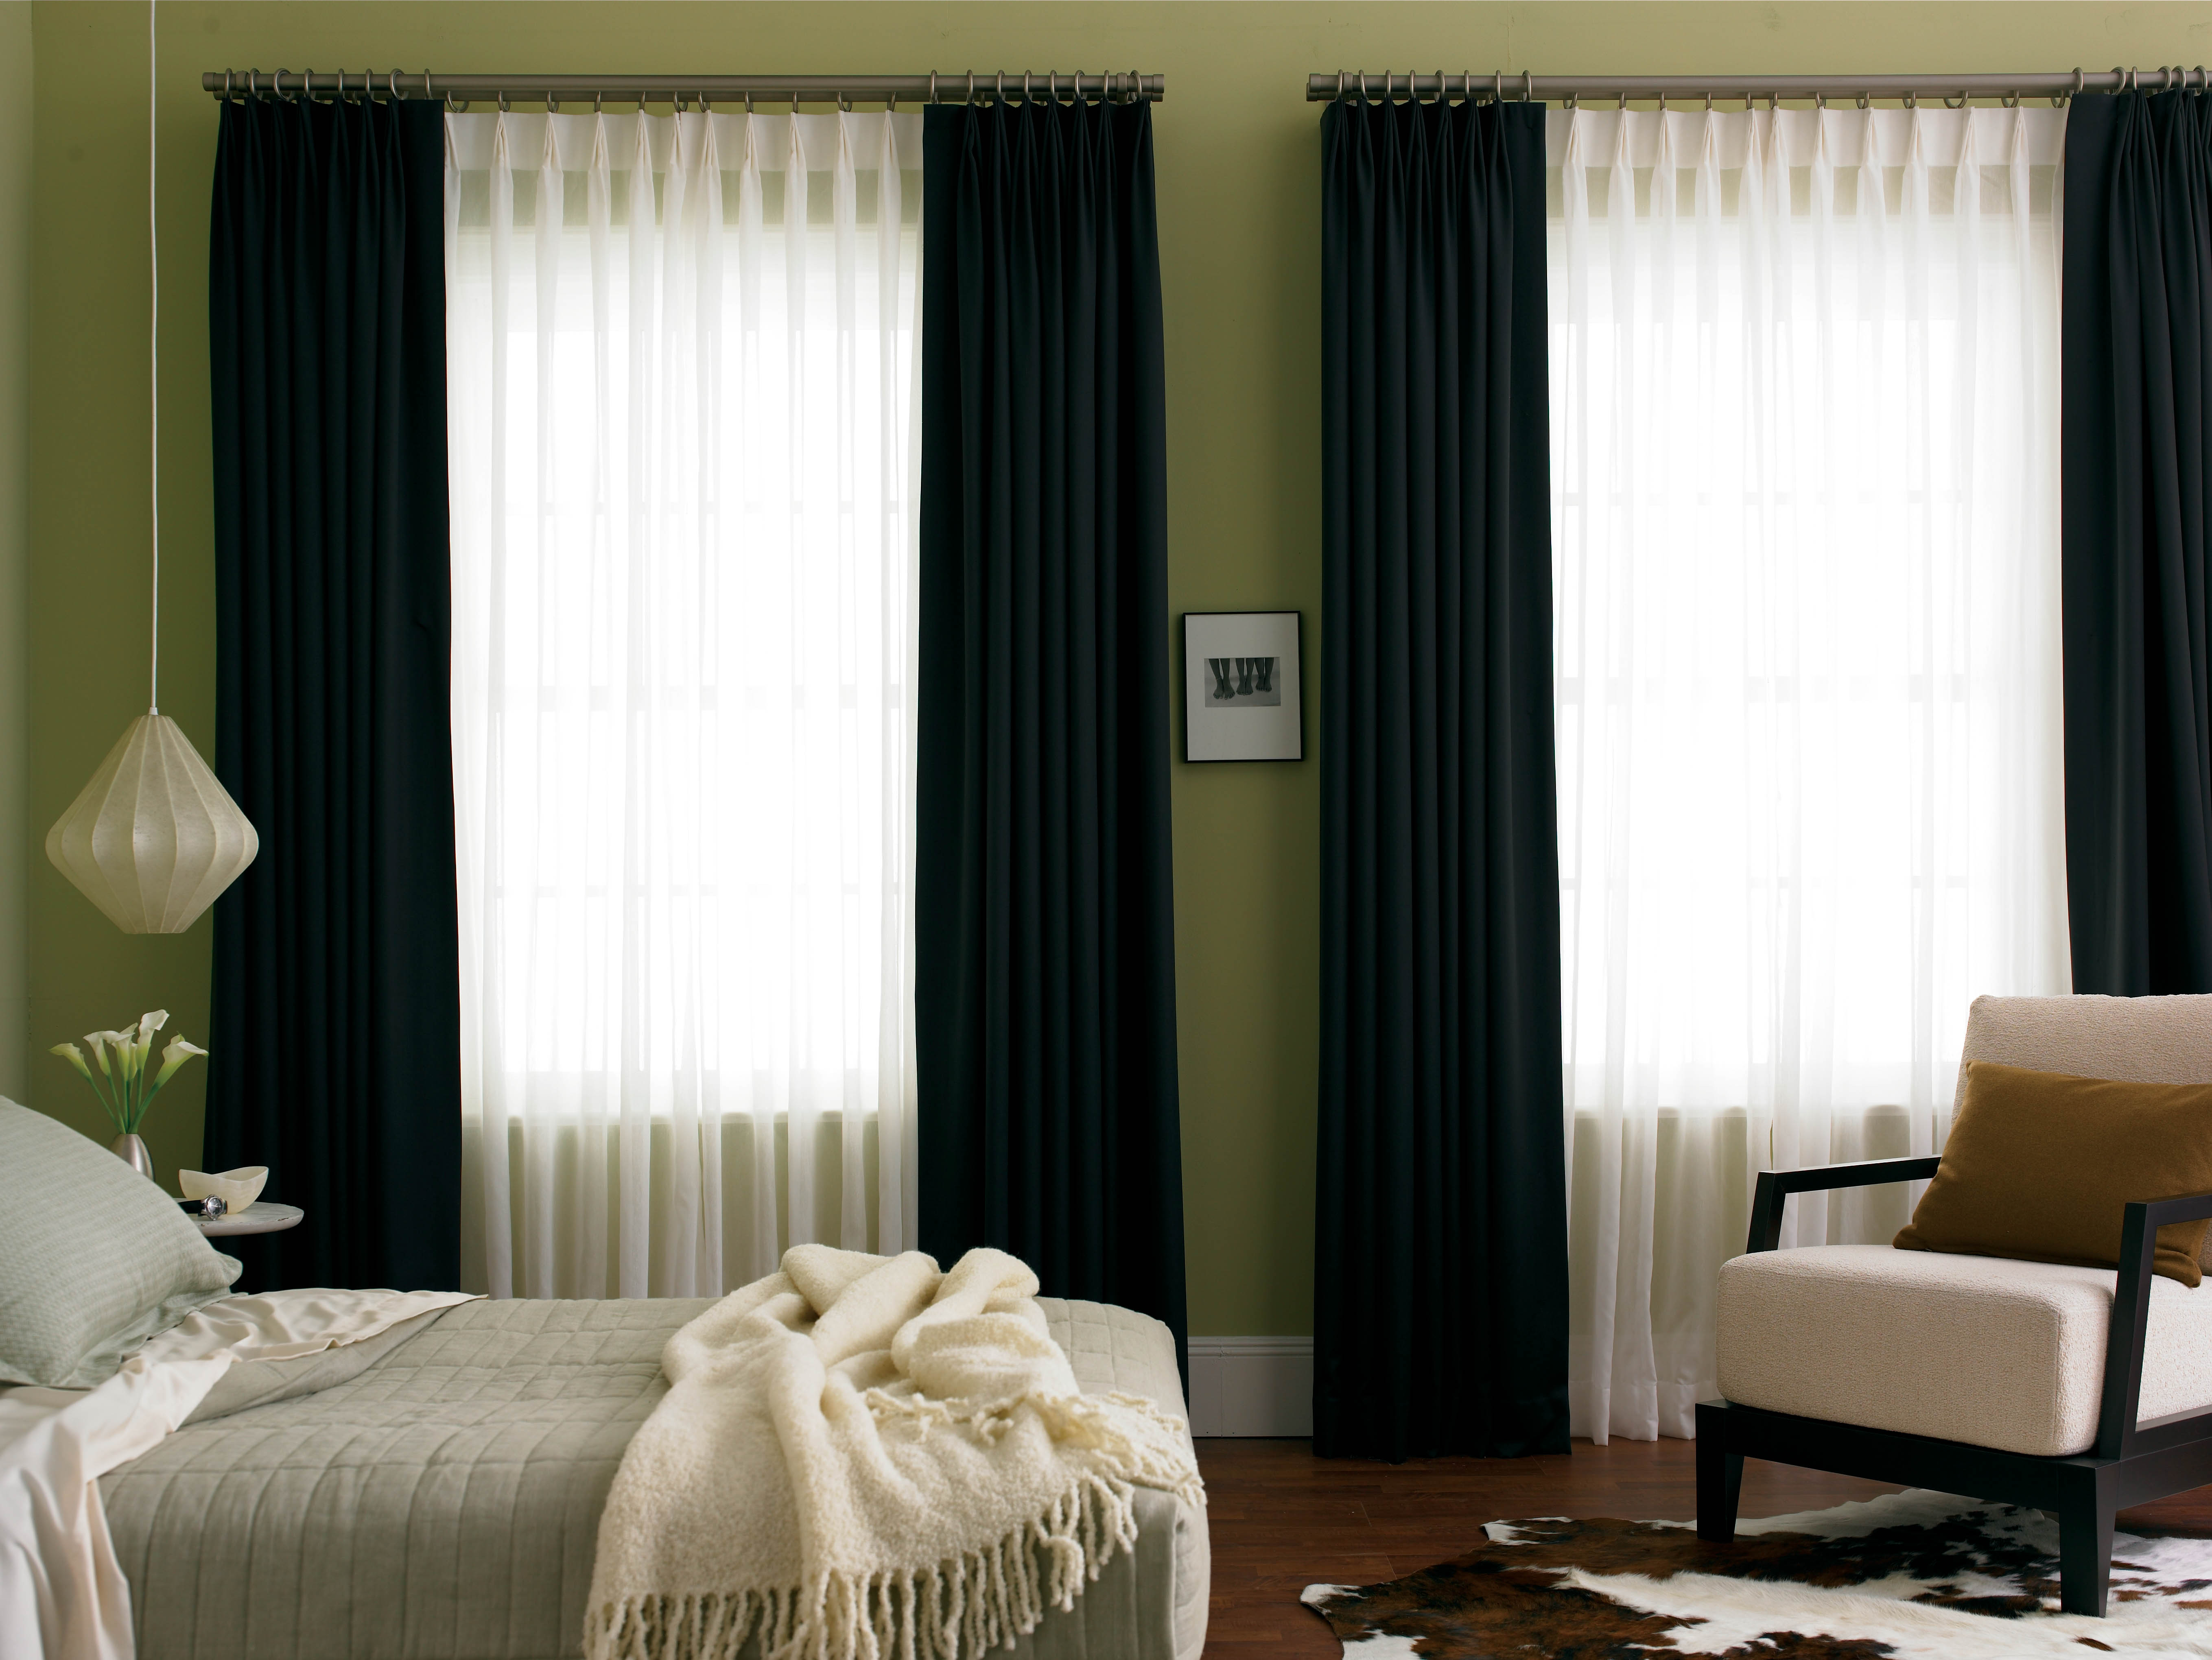 Privacy Curtain For Bedroom The Shade Store 101 Insulated Curtains The Shade Store